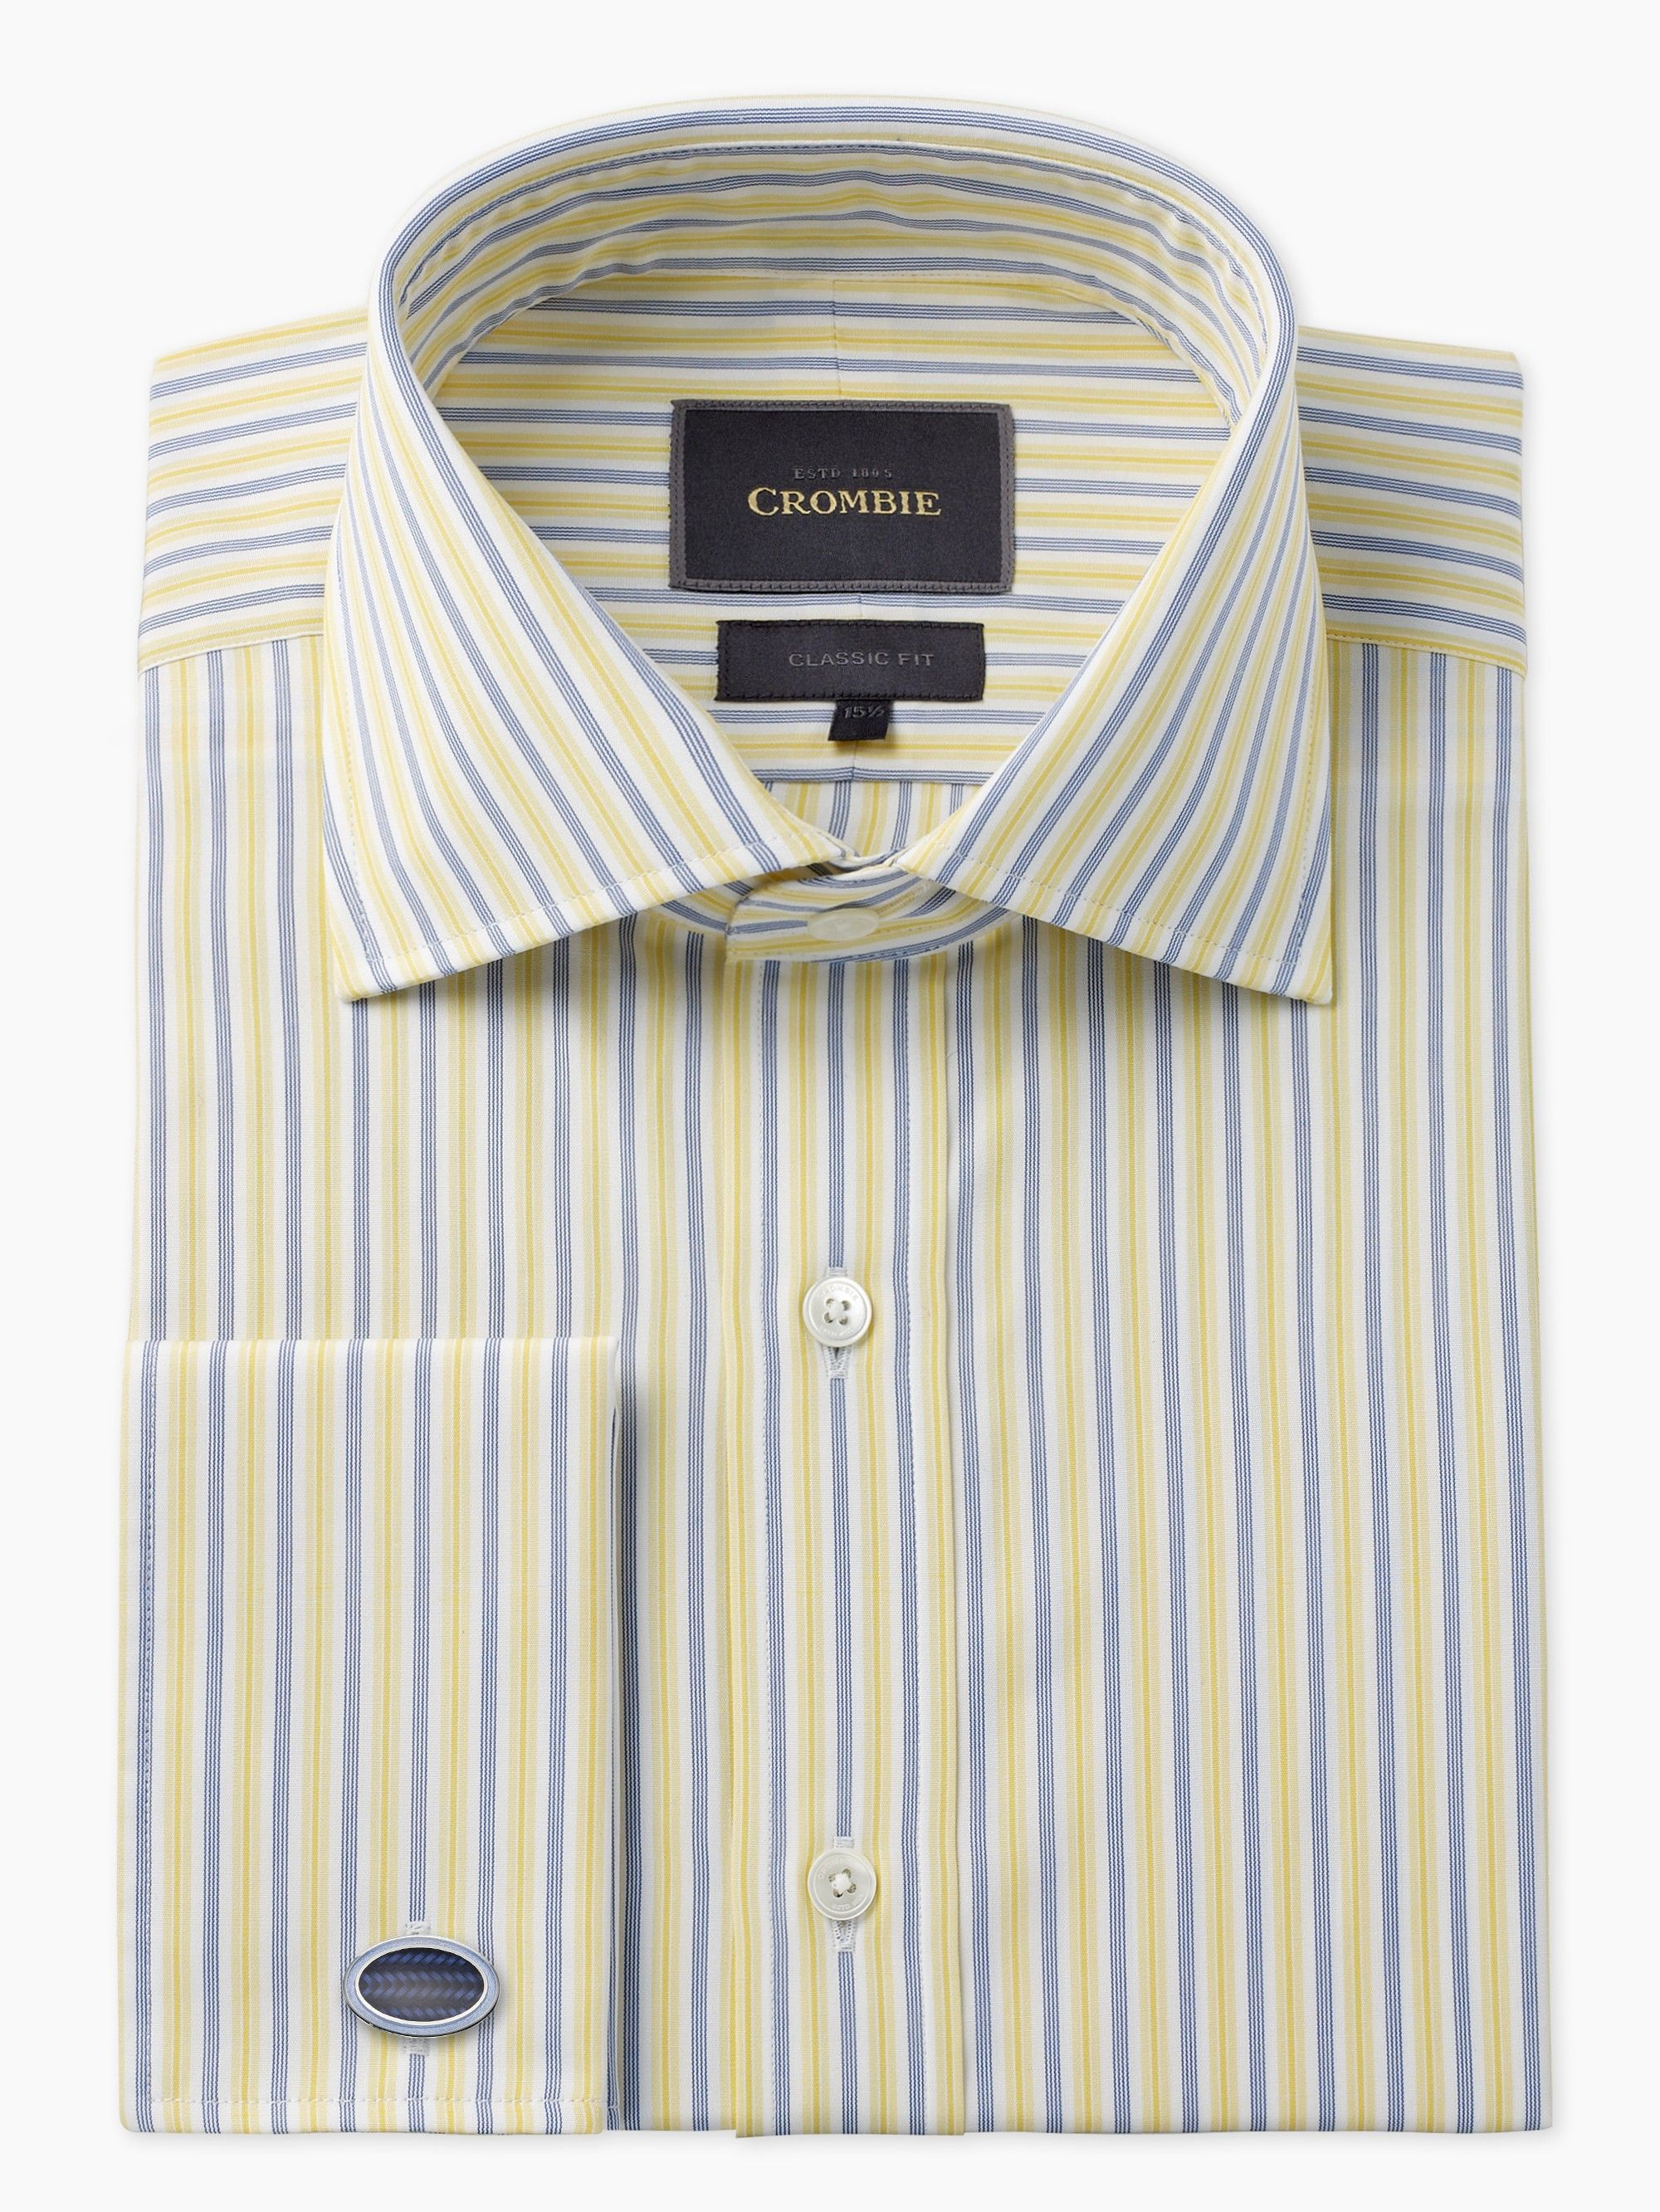 586095cd4 Pin by Stricky Tee on Style | Shirts, Formal shirts for men, Yellow ...